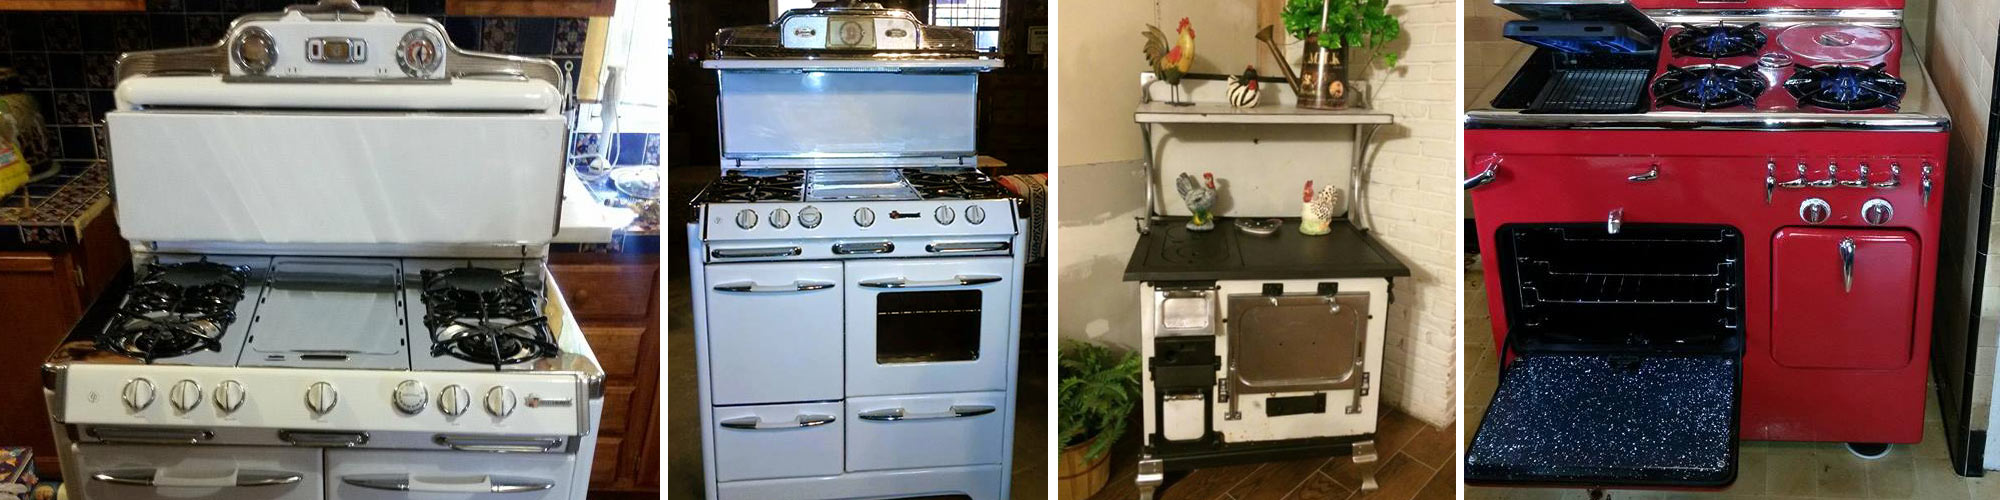 Vintage Appliance Restoration - Restored Appliances